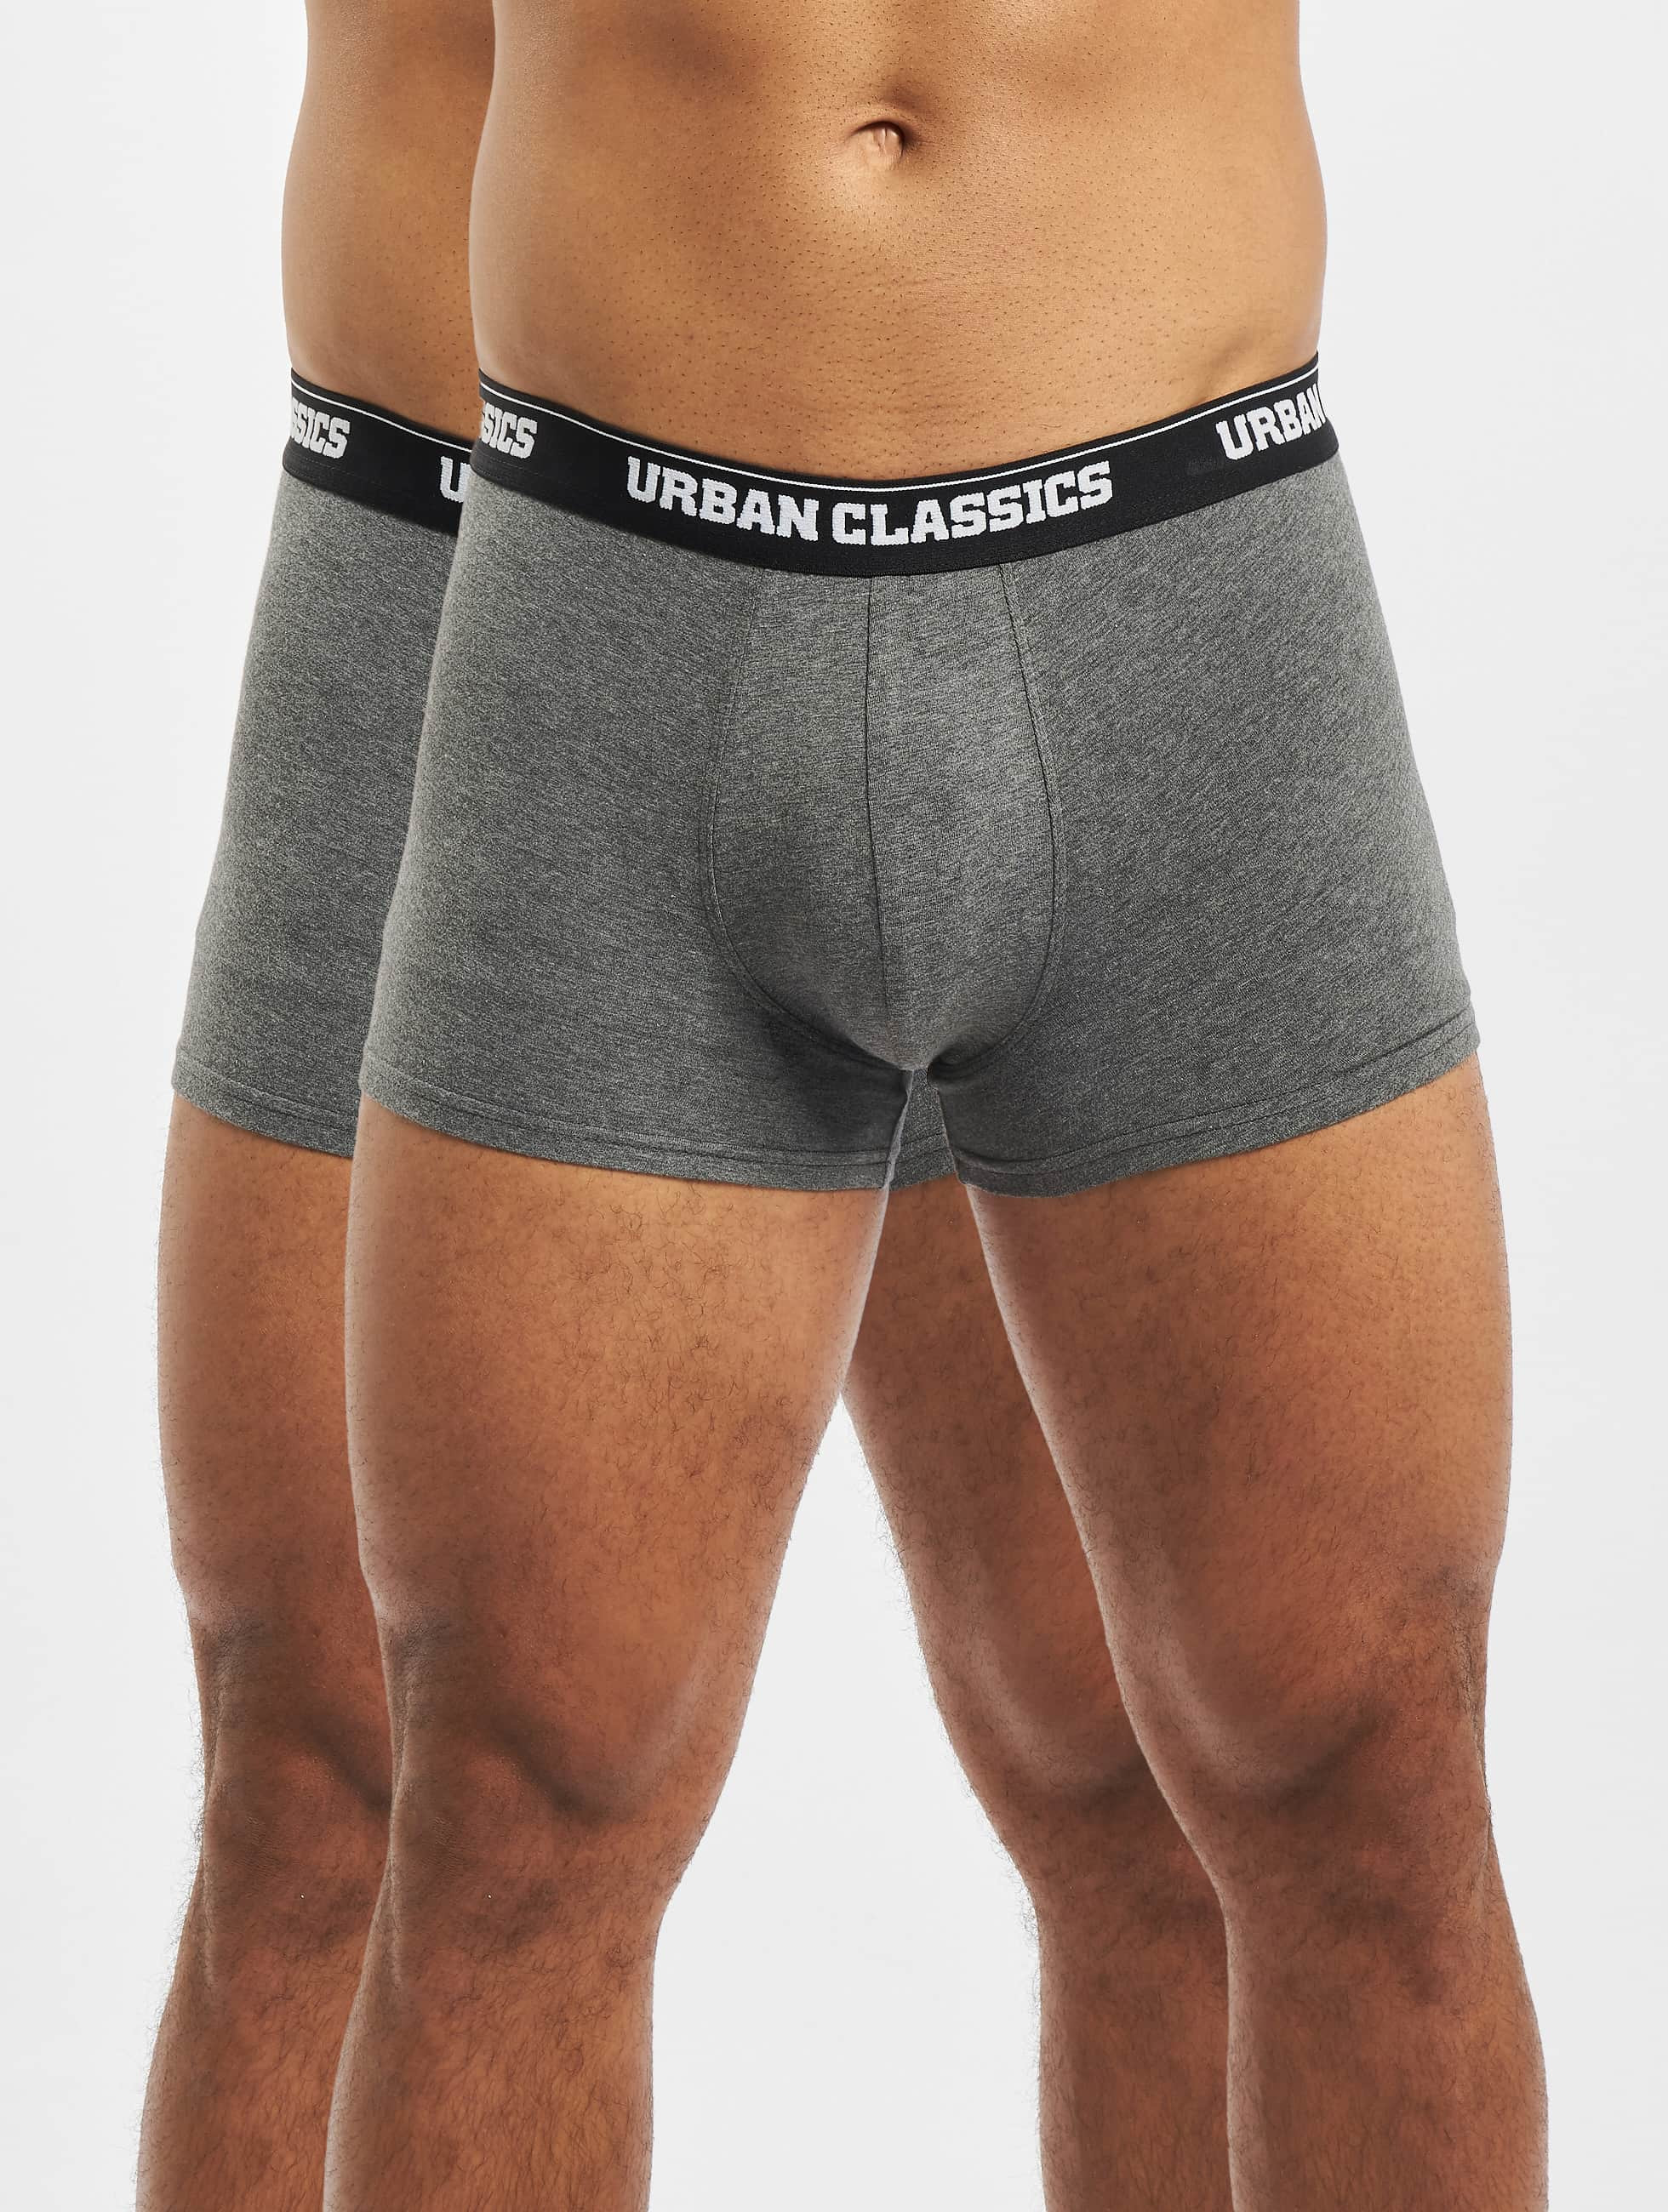 Urban Classics Boxer Short Mens Double Pack grey